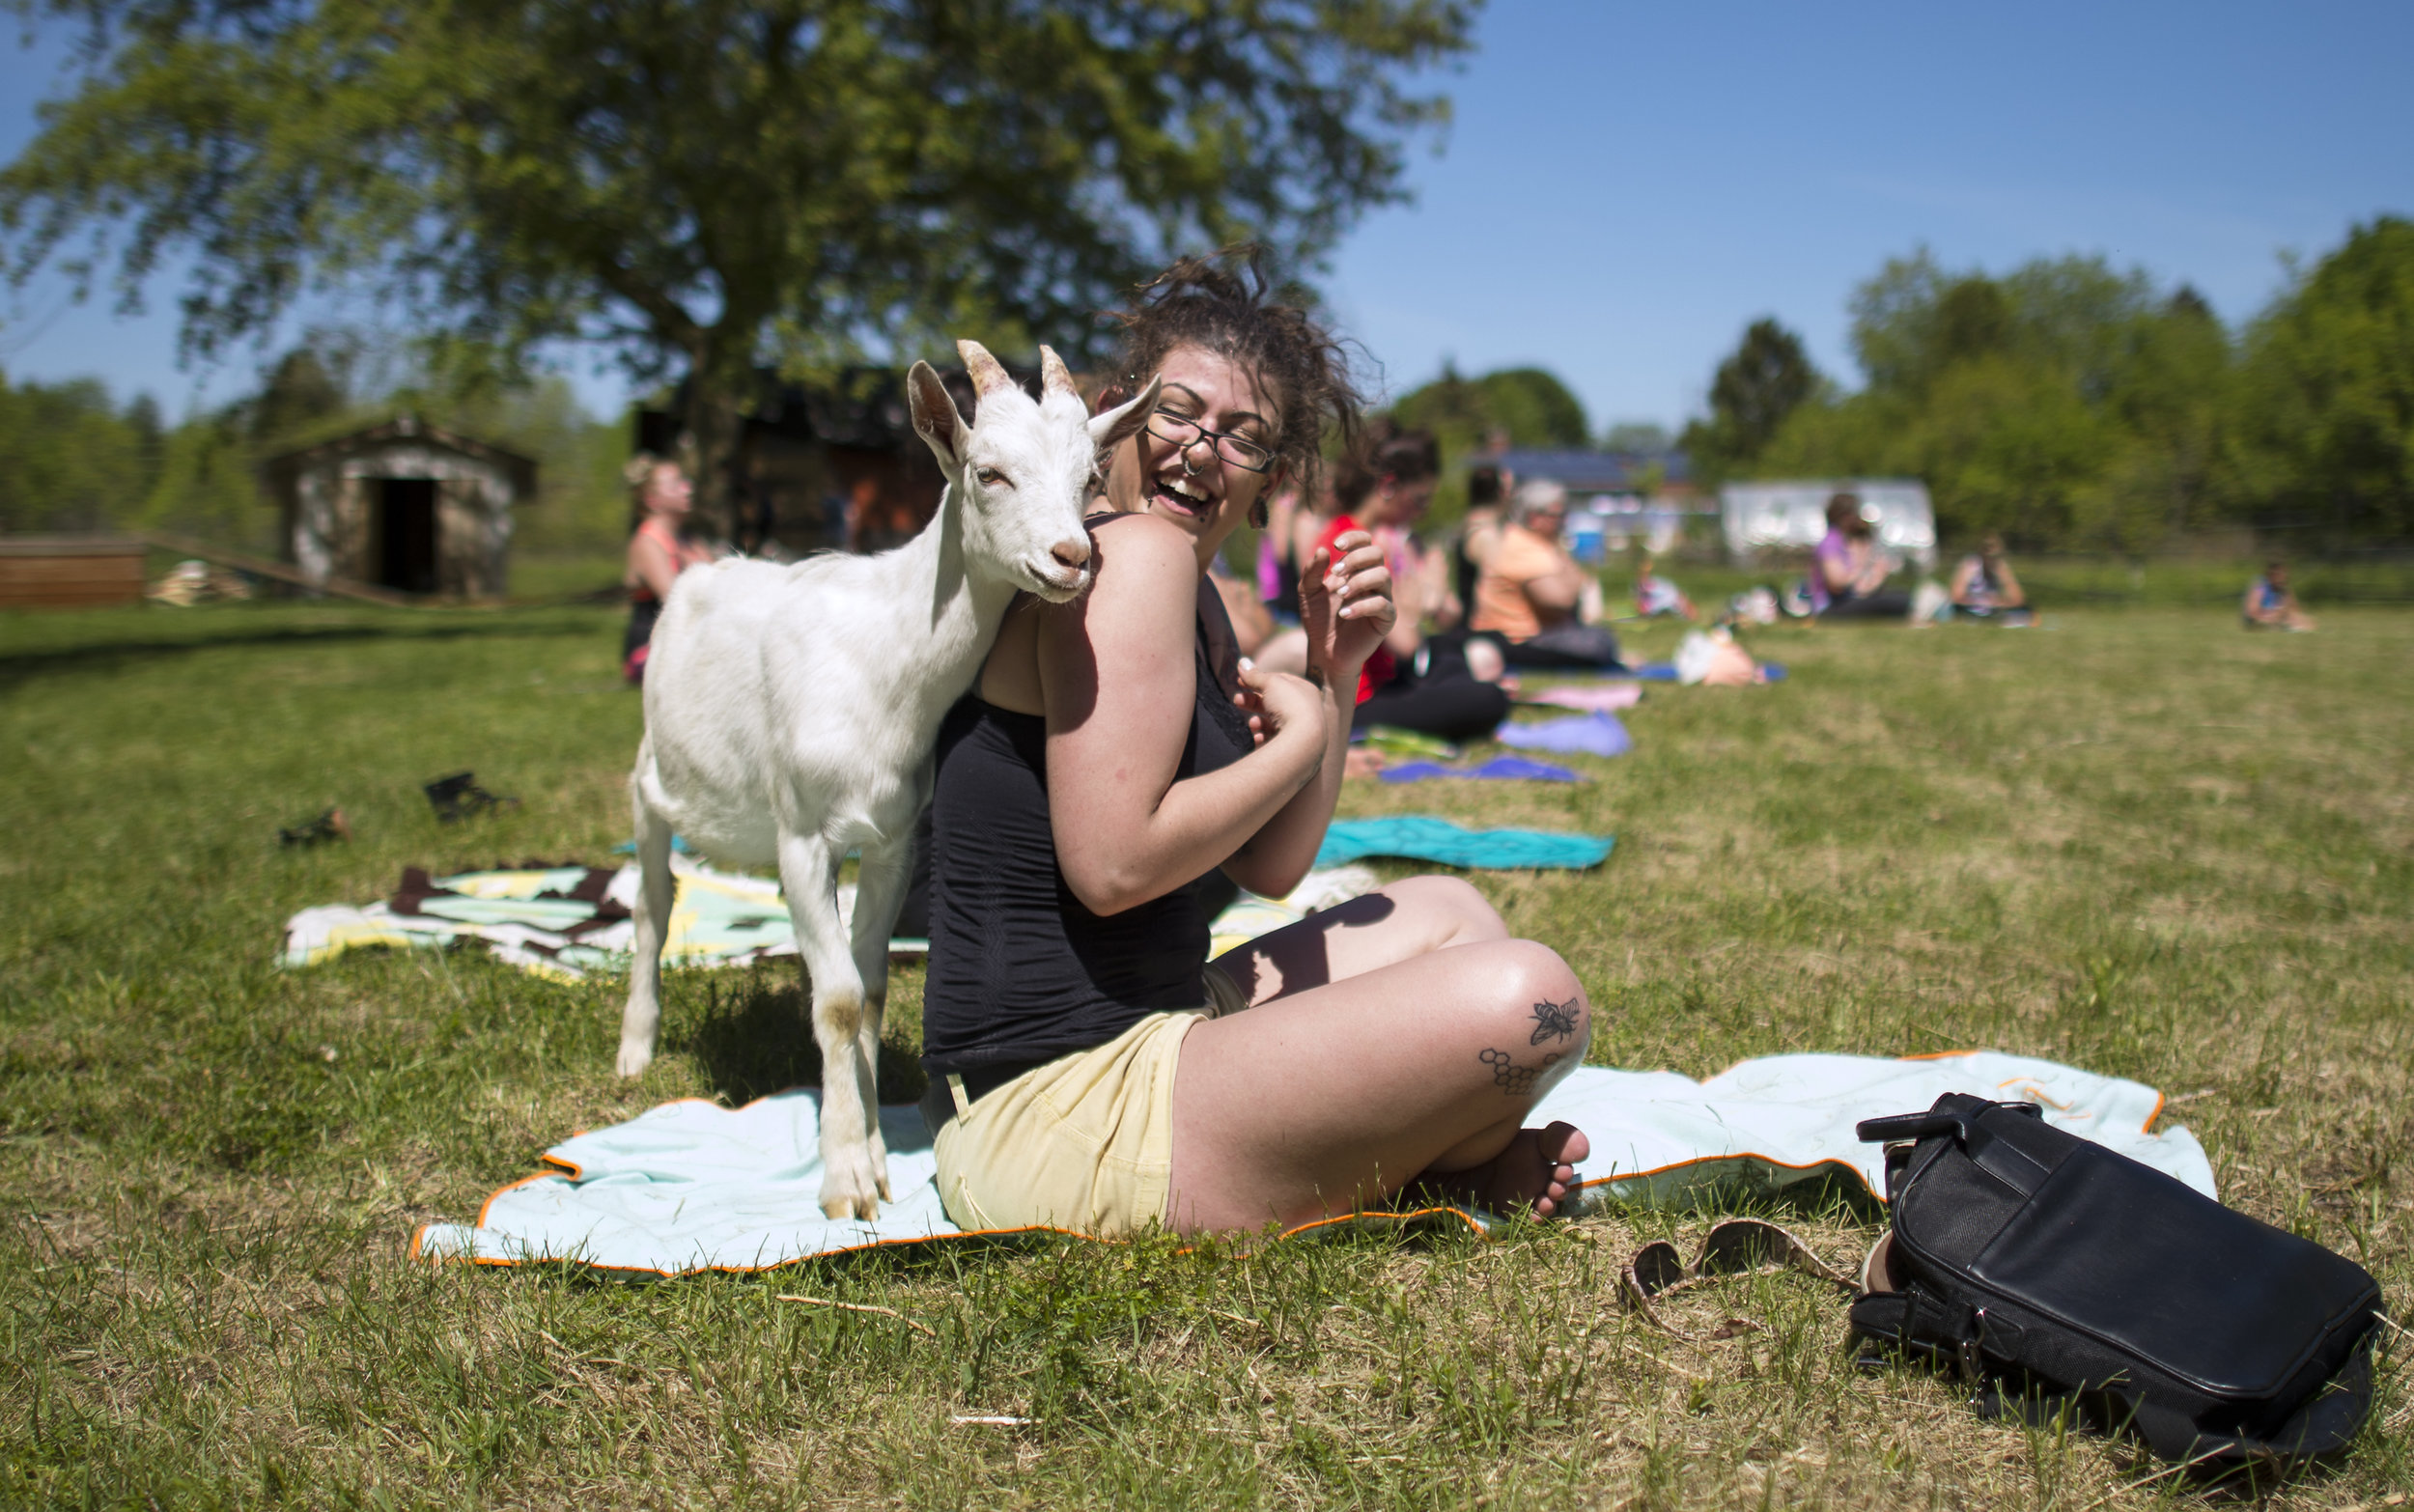 A woman gets a surprise visit from one of the many goats during a goat yoga session at Growing Hopes Farm in Cambridge, Ont. on June 03, 2017.